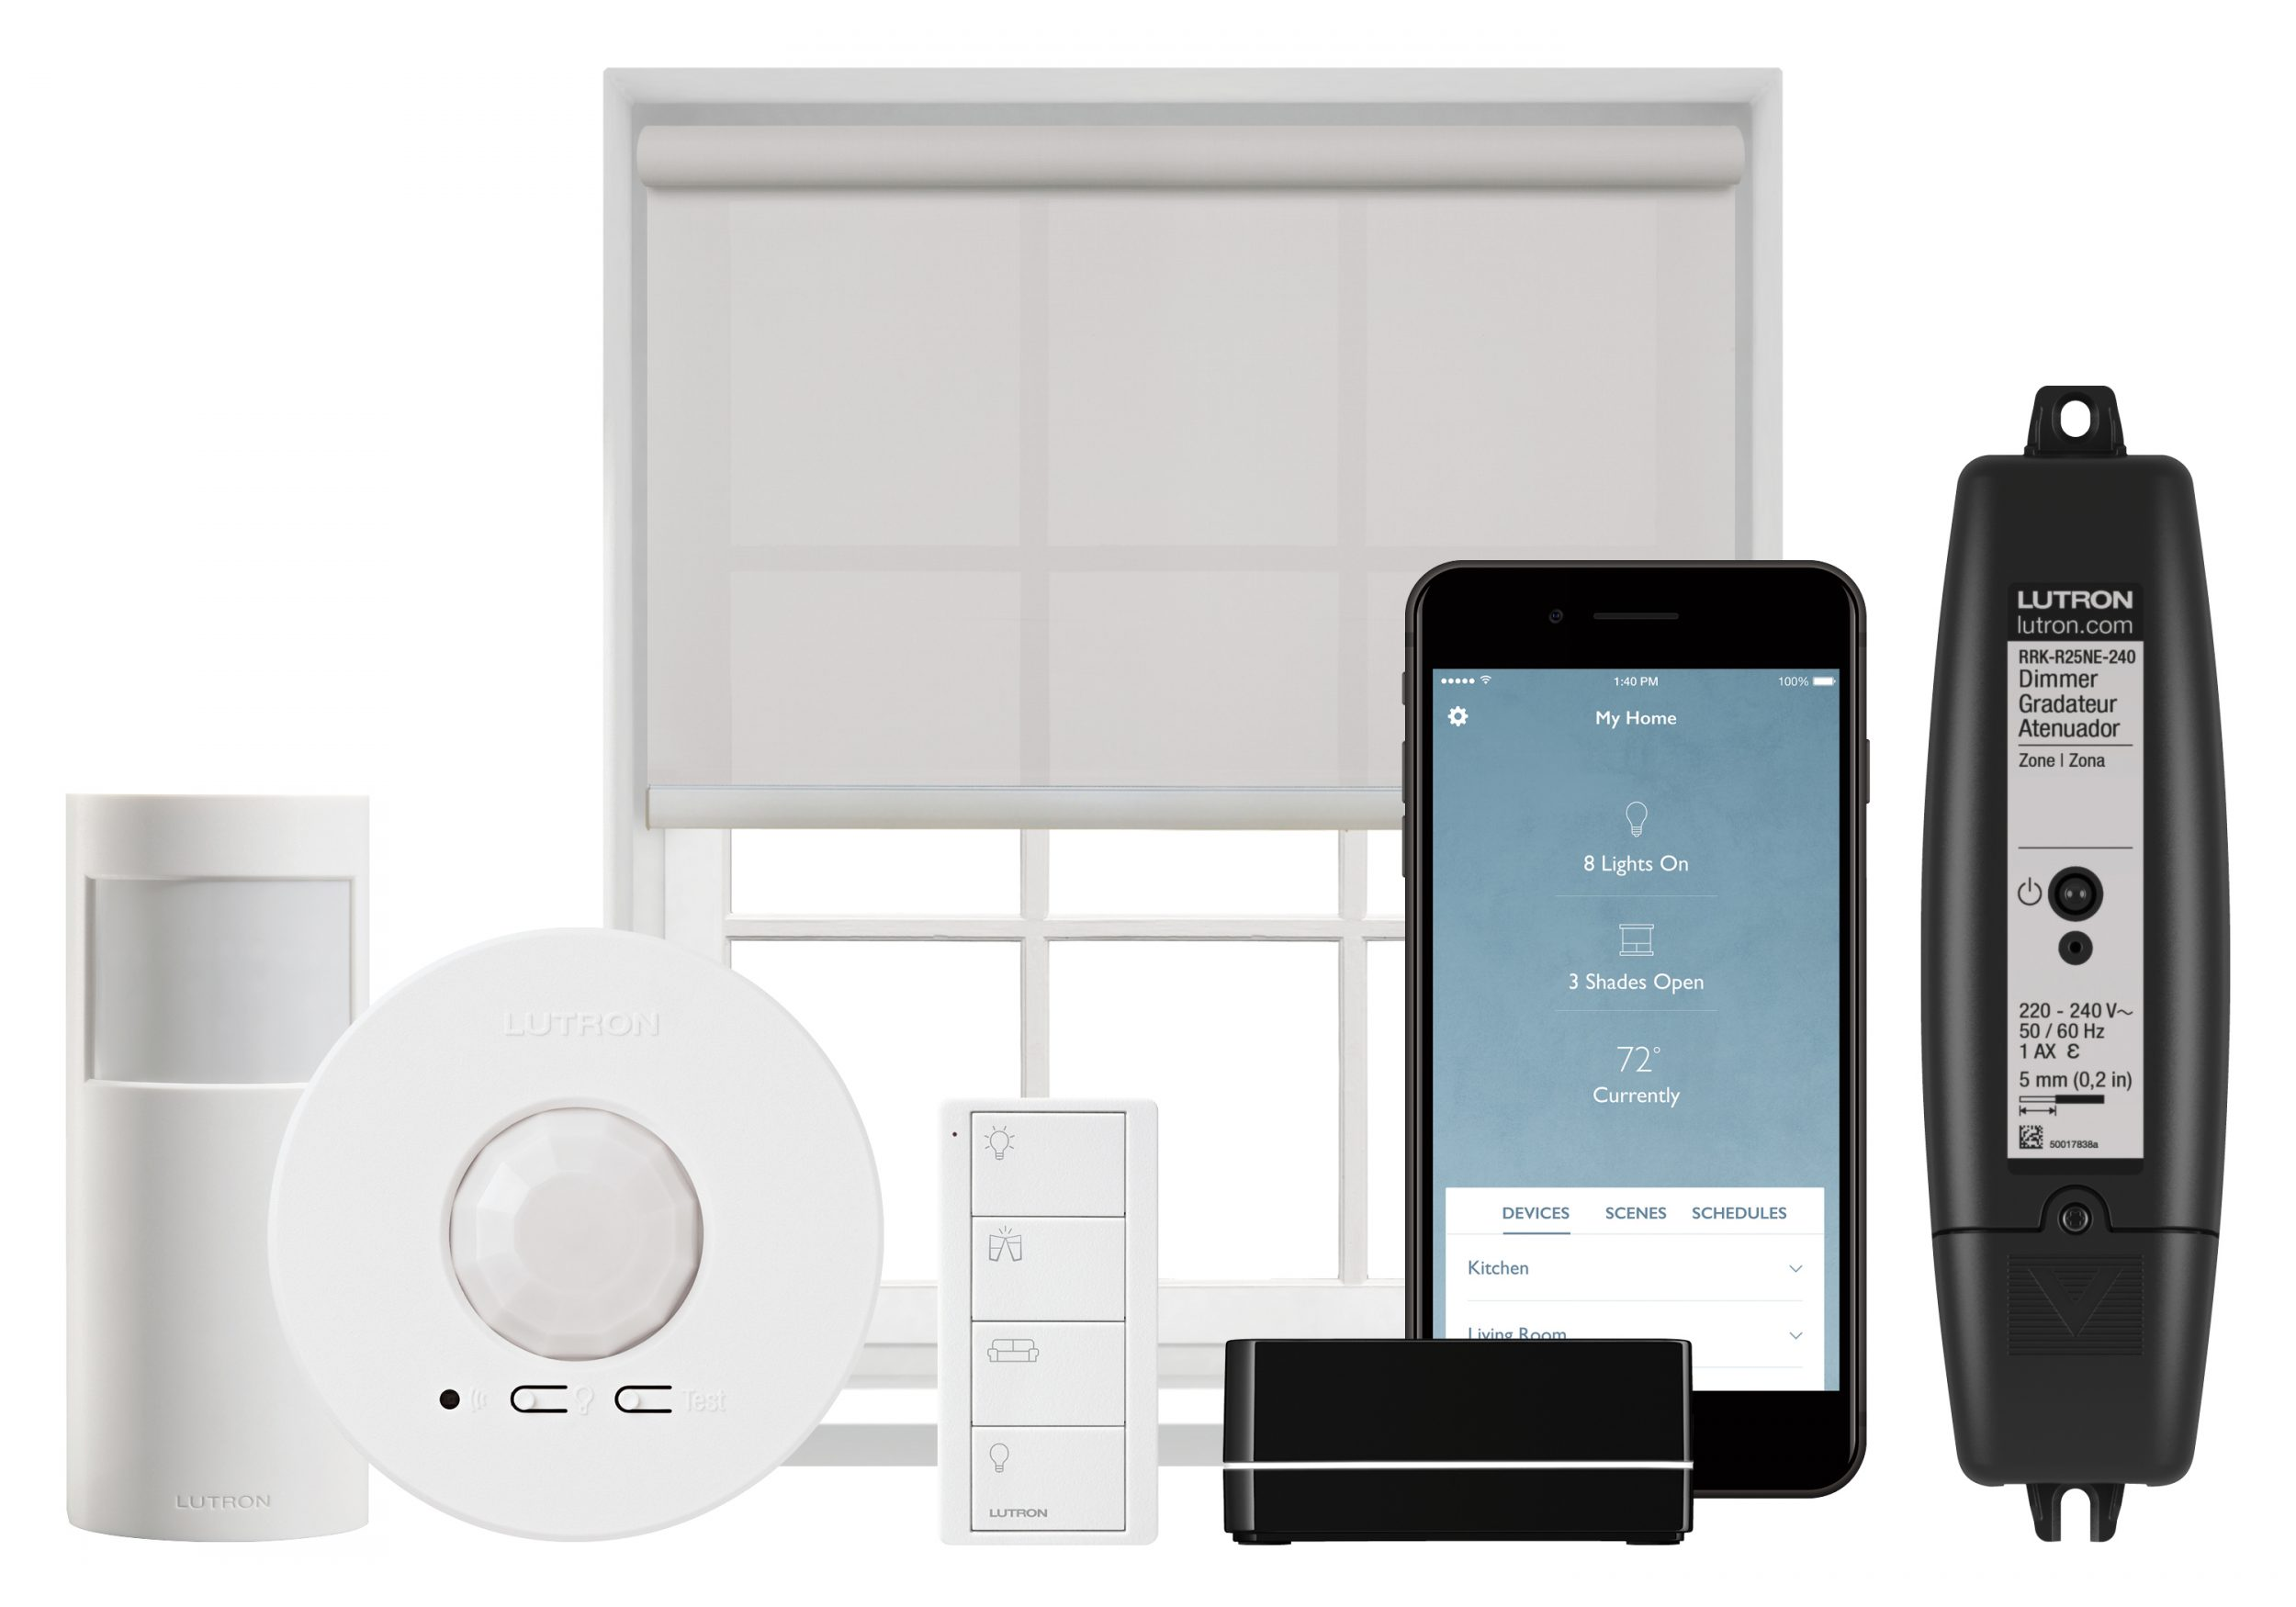 Luxury_Home_Automation_Lutron_RA2_Select_Product_Line_Repeater_inline_dimmer_motion_sensor_Shading_Pico_Remote